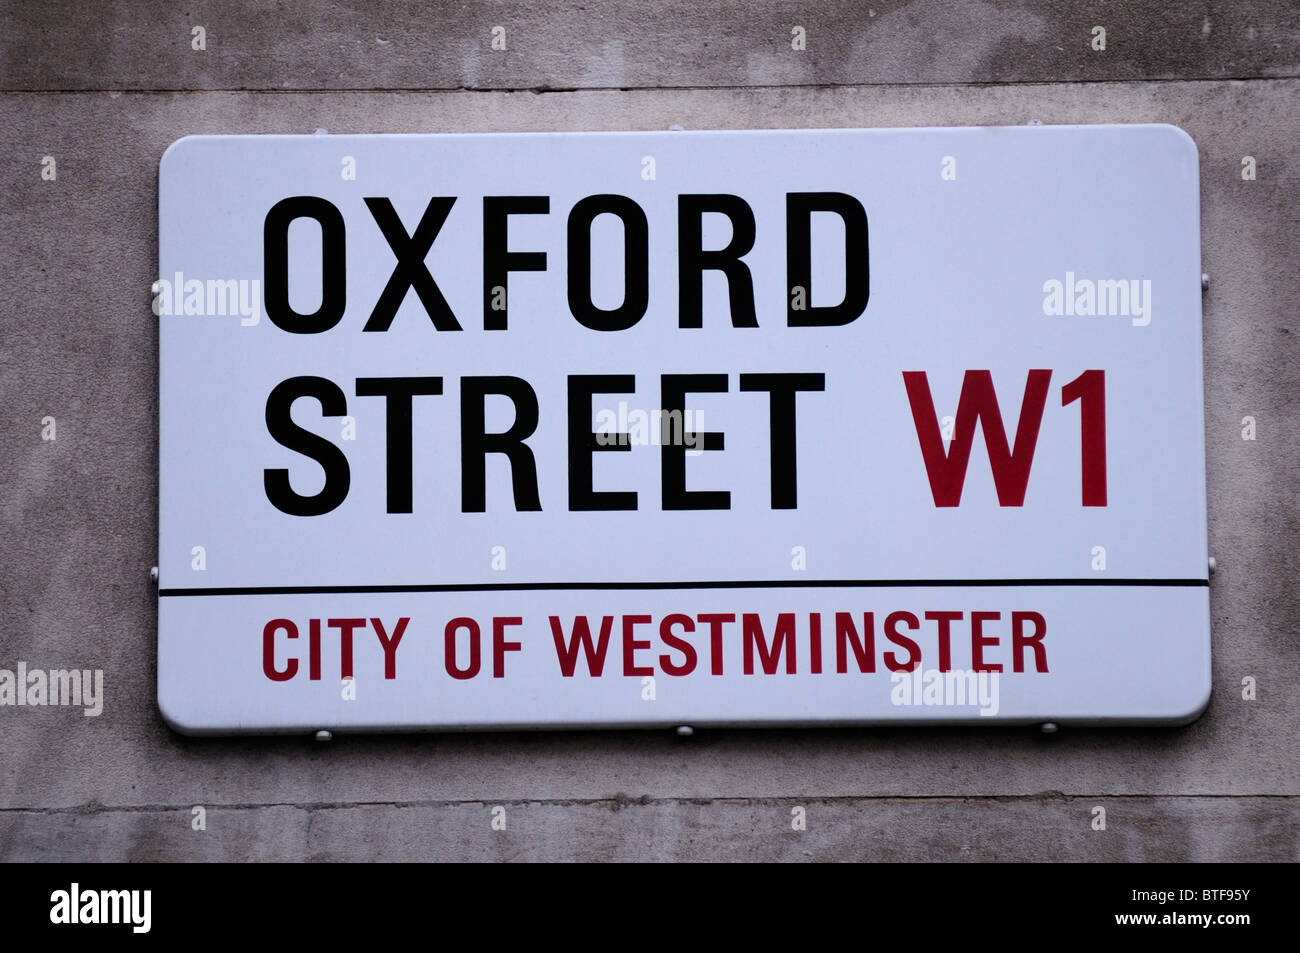 Oxford Street W1 City of Westminster Street Sign, London, England, UK - Stock Image